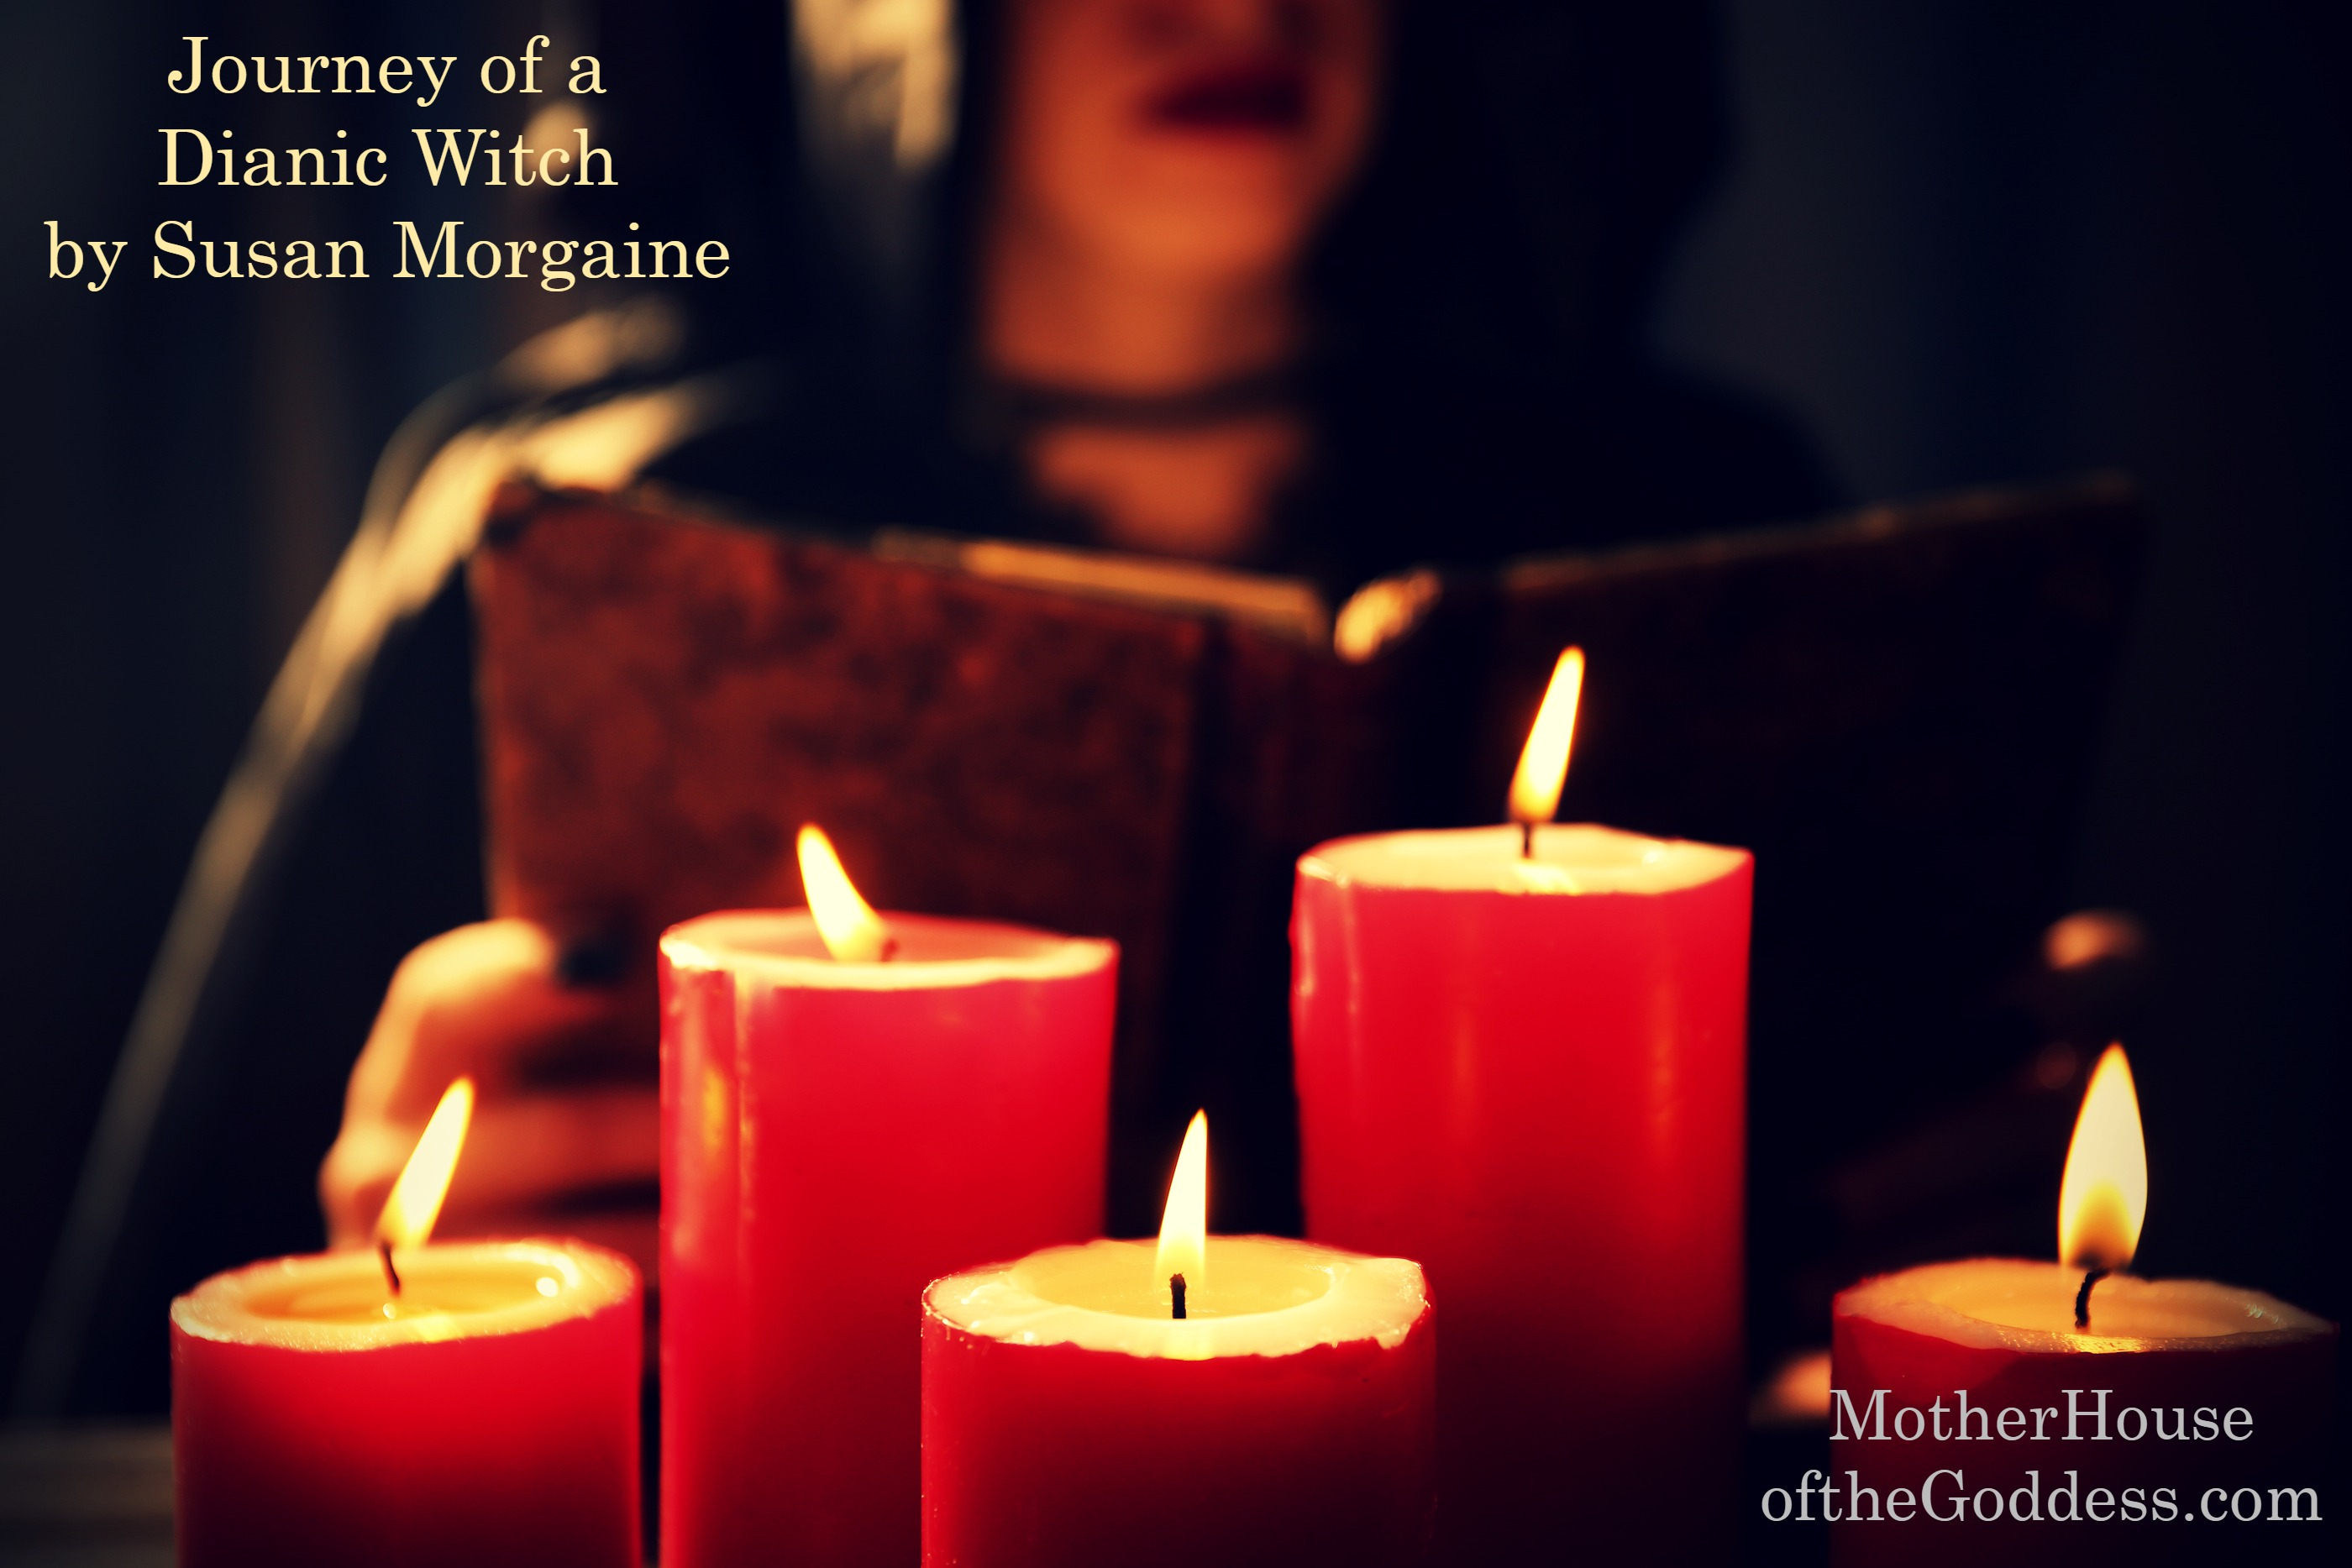 Journey of a Dianic Witch by Susan Morgaine for MotherHouse of the Goddess